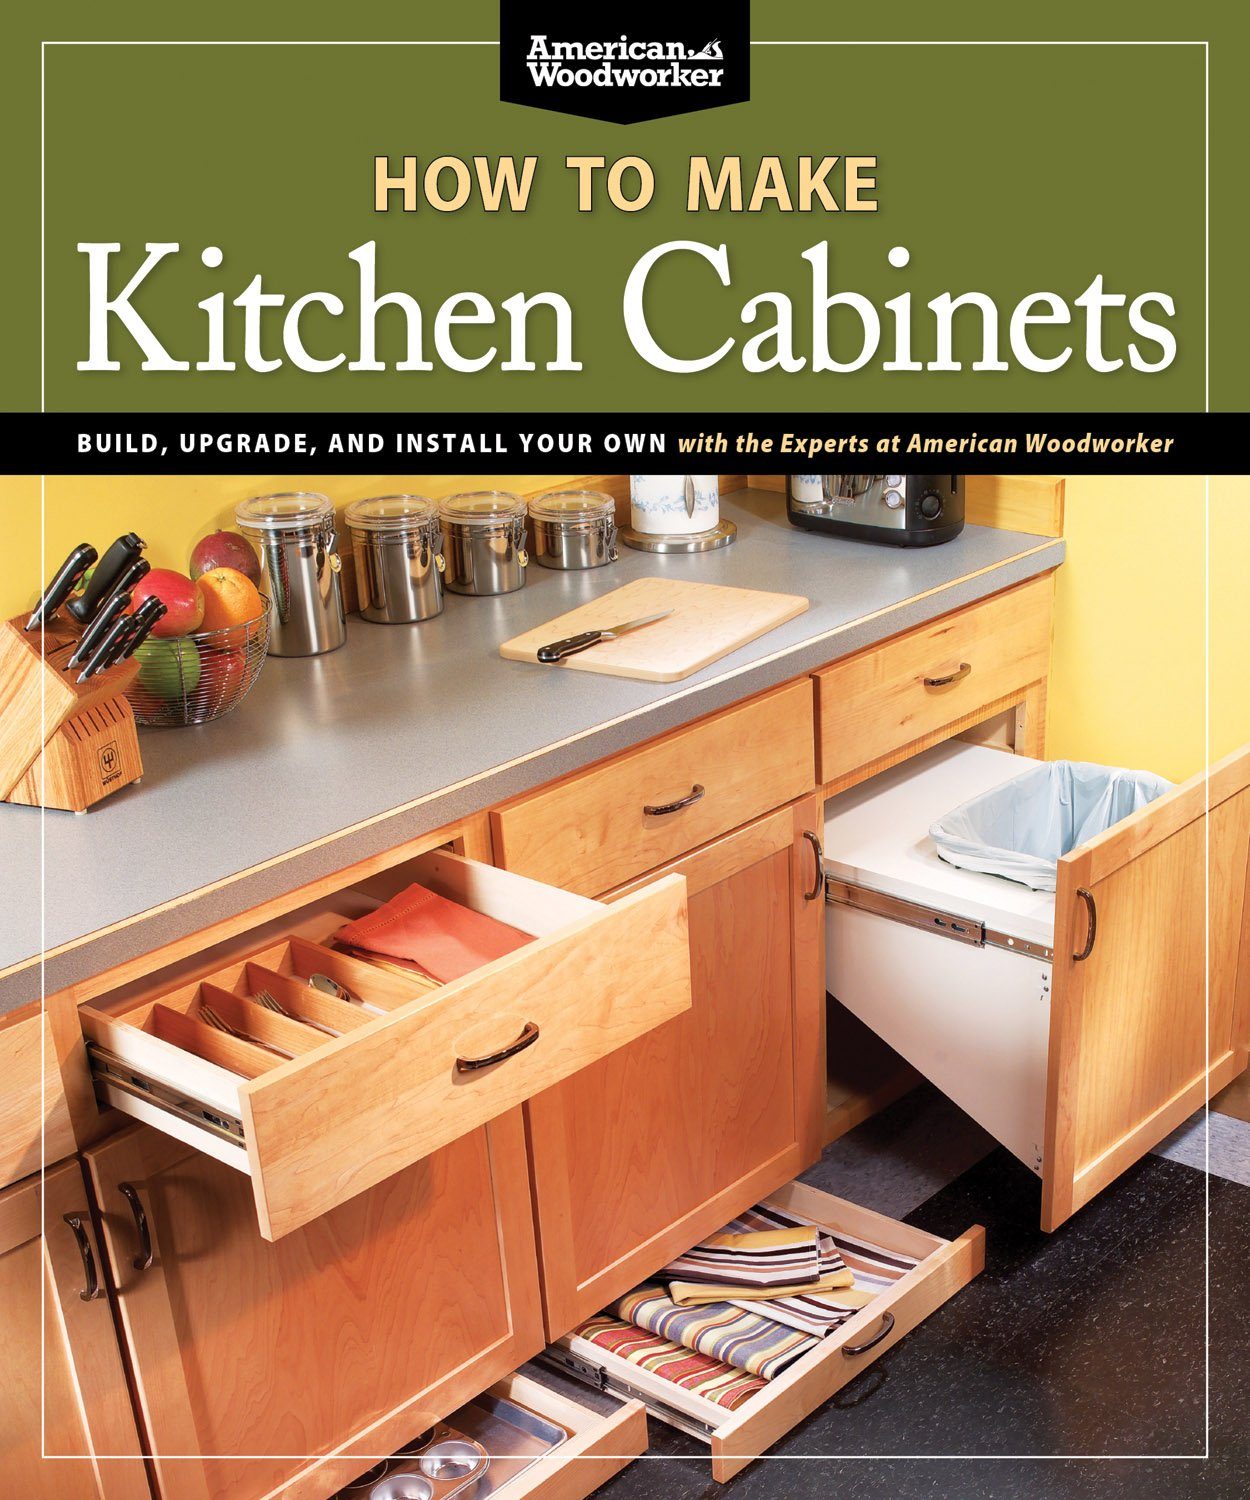 How To Make Kitchen Cabinets Build Upgrade And Install Your Own With The Experts At American Woodworker Fox Chapel Publishing Johnson Randy 0858924002705 Amazon Com Books